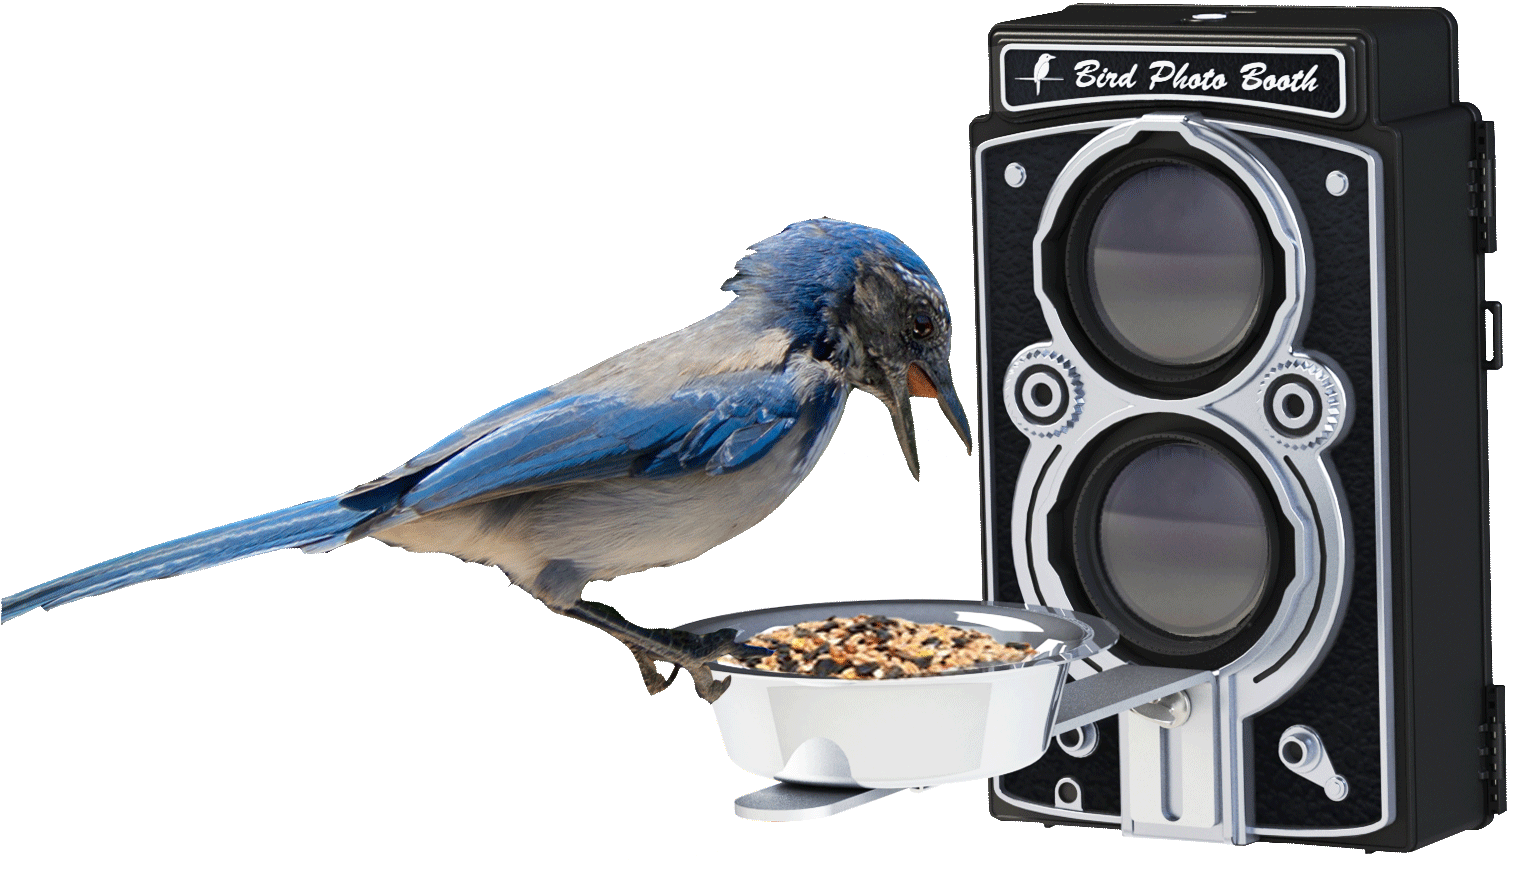 bird-feeding-at-bird-photo-booth